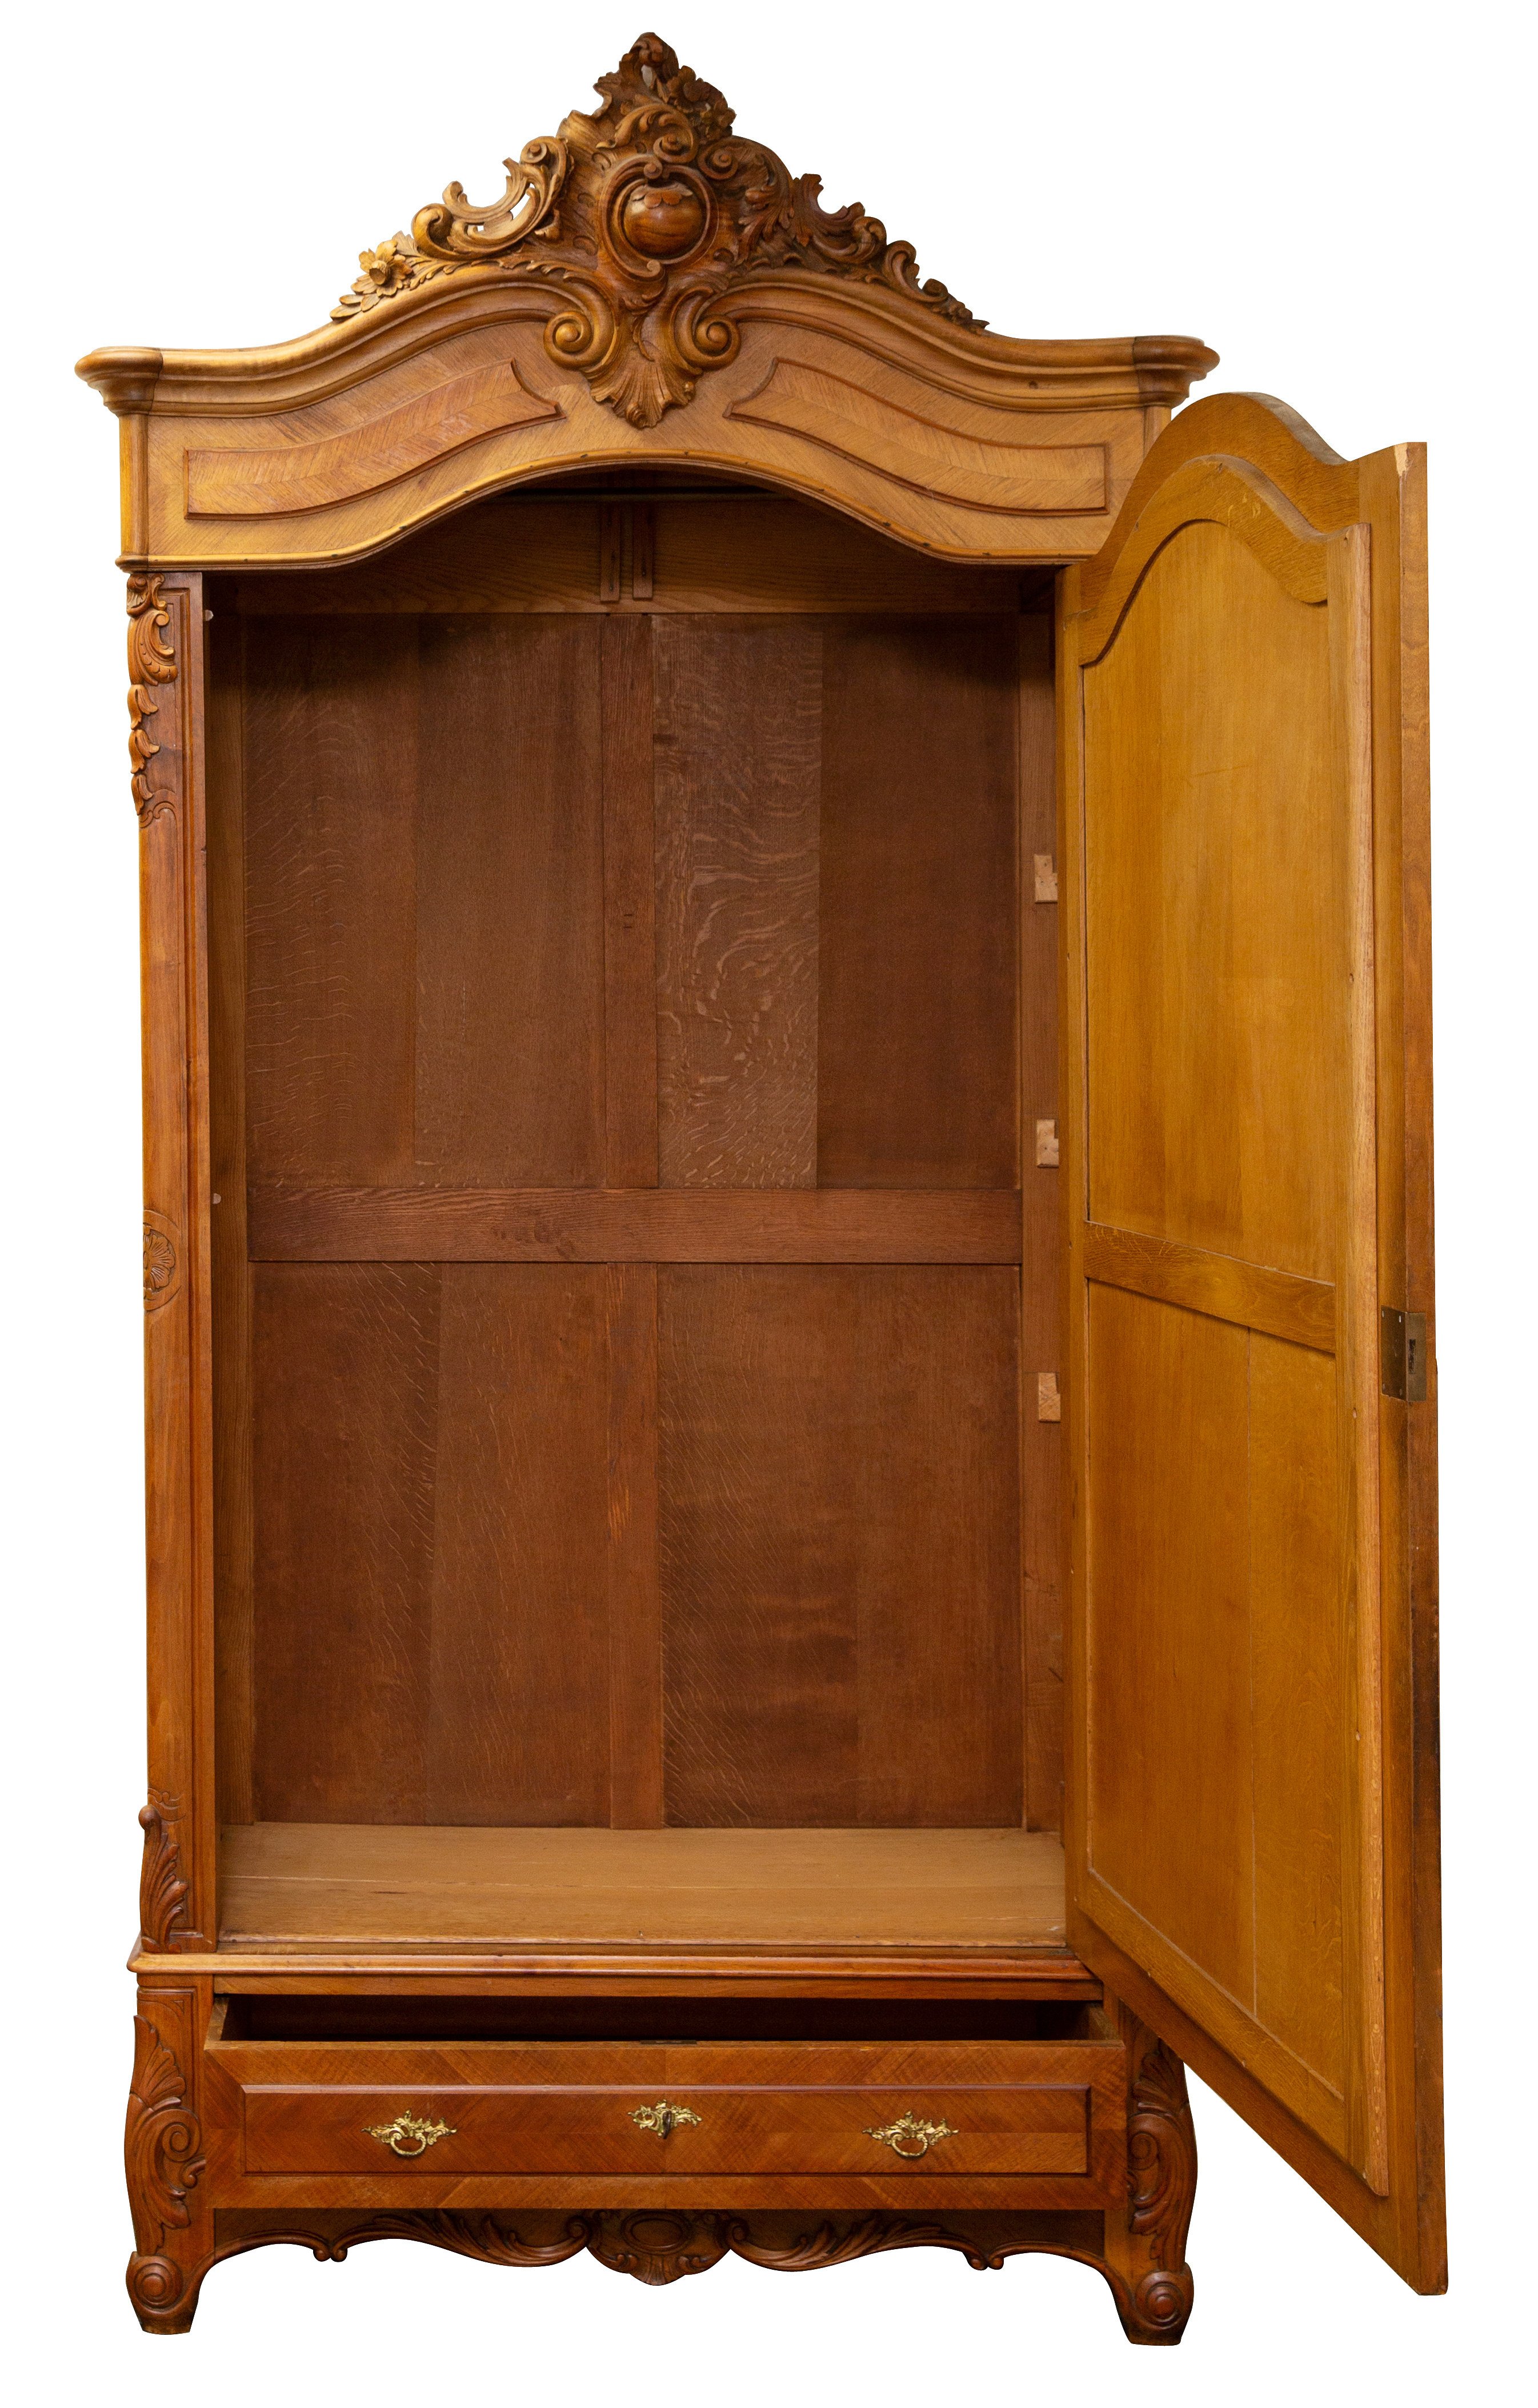 LATE 19TH CENTURY FRENCH REGENCE CARVED WALNUT OVERSIZED MIRRORED SINGLE DOOR ARMOIRE - Image 3 of 4